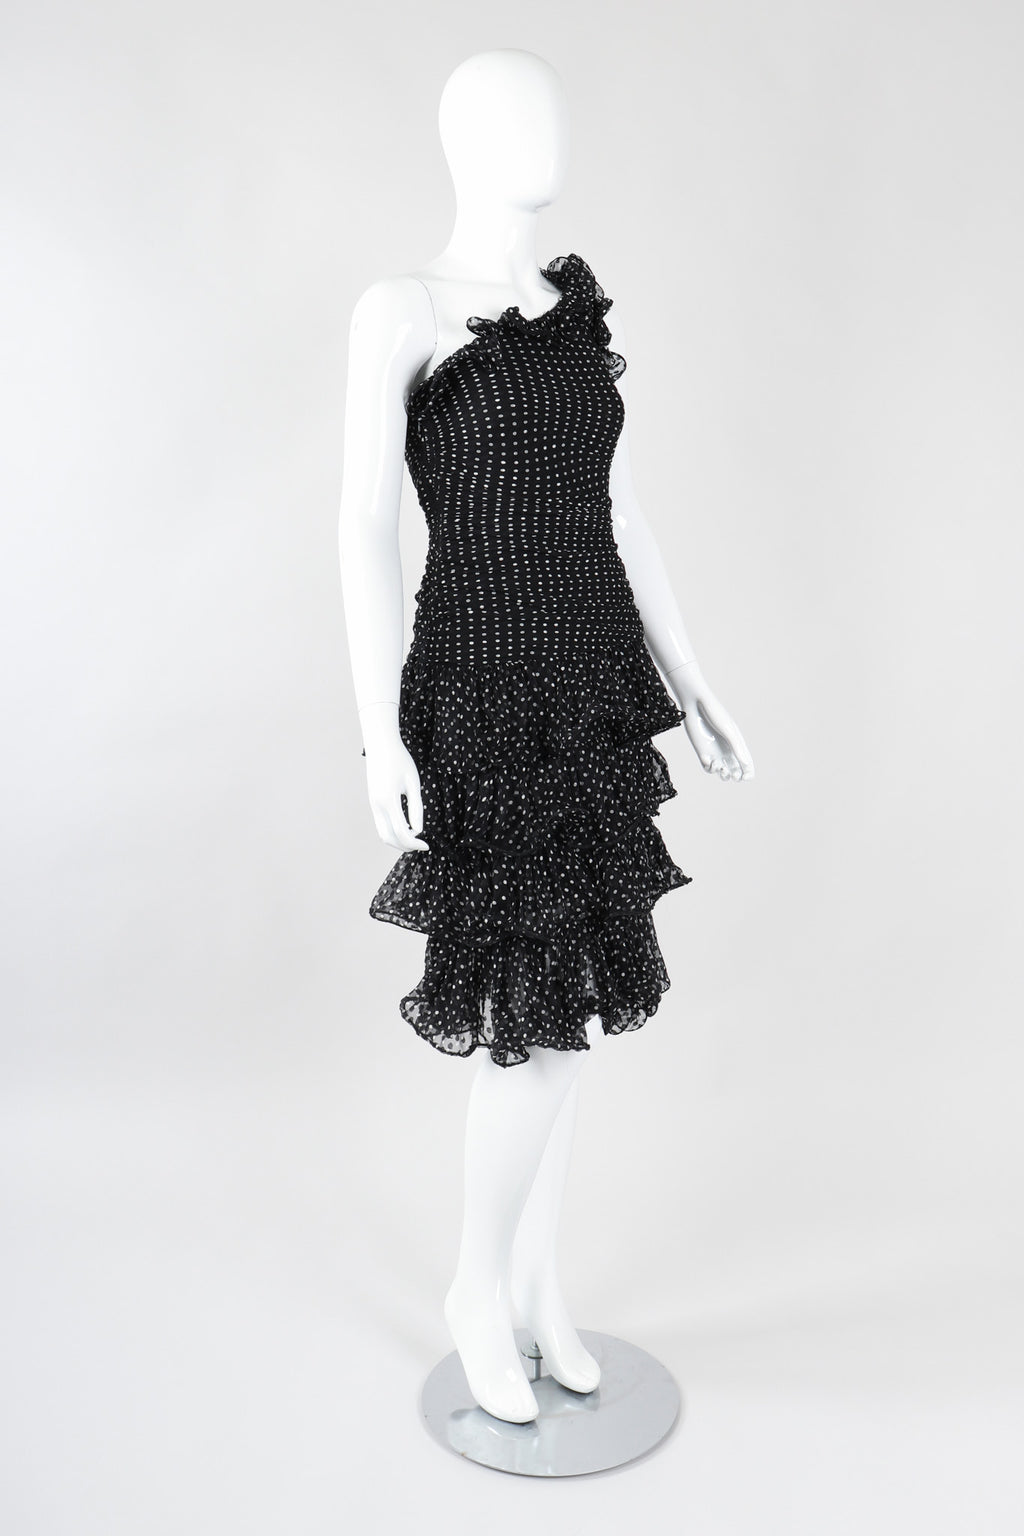 Recess Los Angeles Vintage Oscar de la Renta One-Shoulder Dotted Chiffon Ruffle Dress